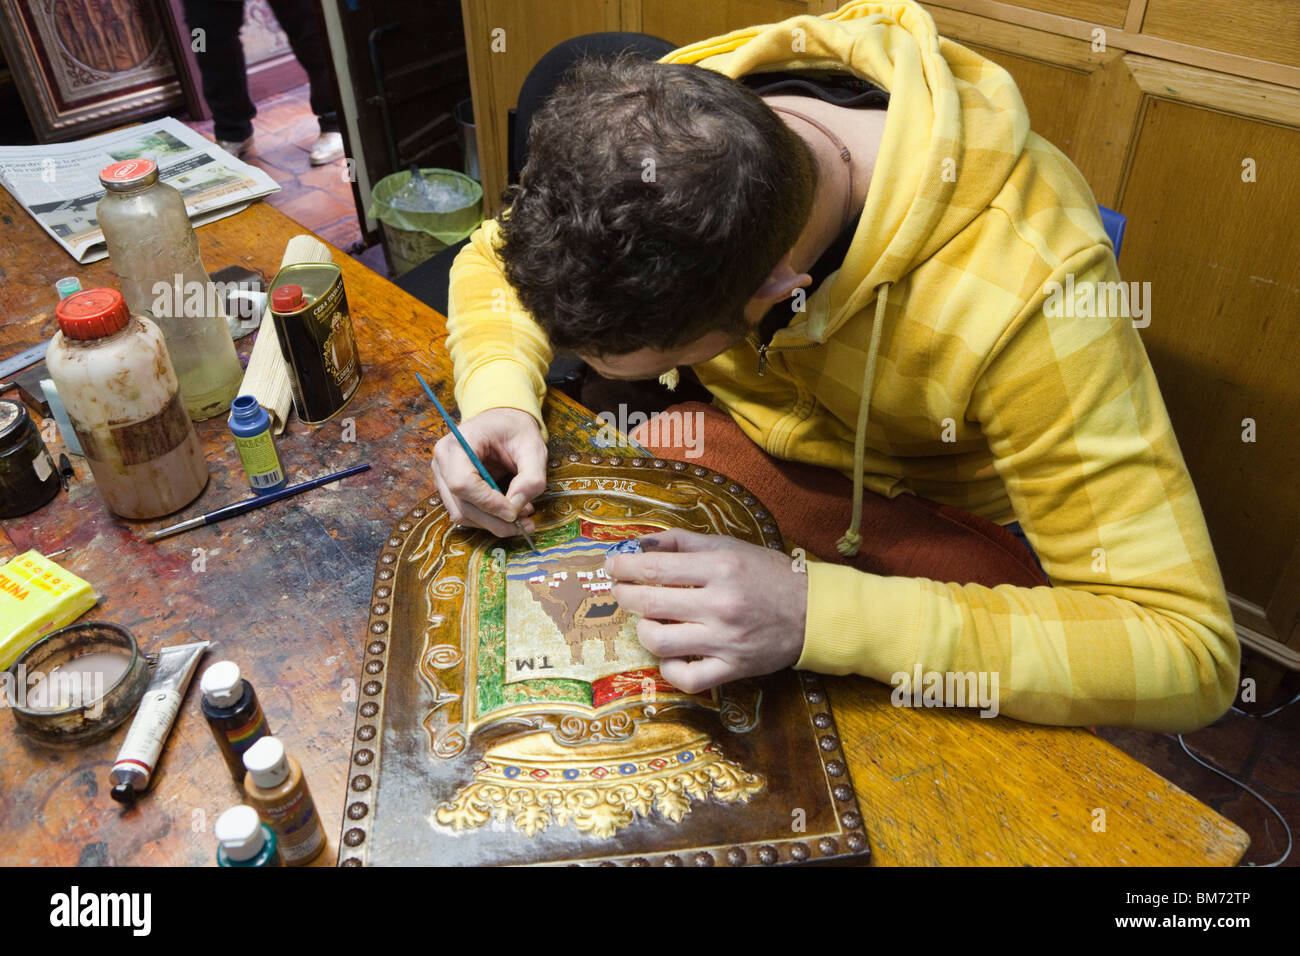 Artisan painting engraved leather in the Taller Meryan, Cordoba, Cordoba Province, Spain. - Stock Image